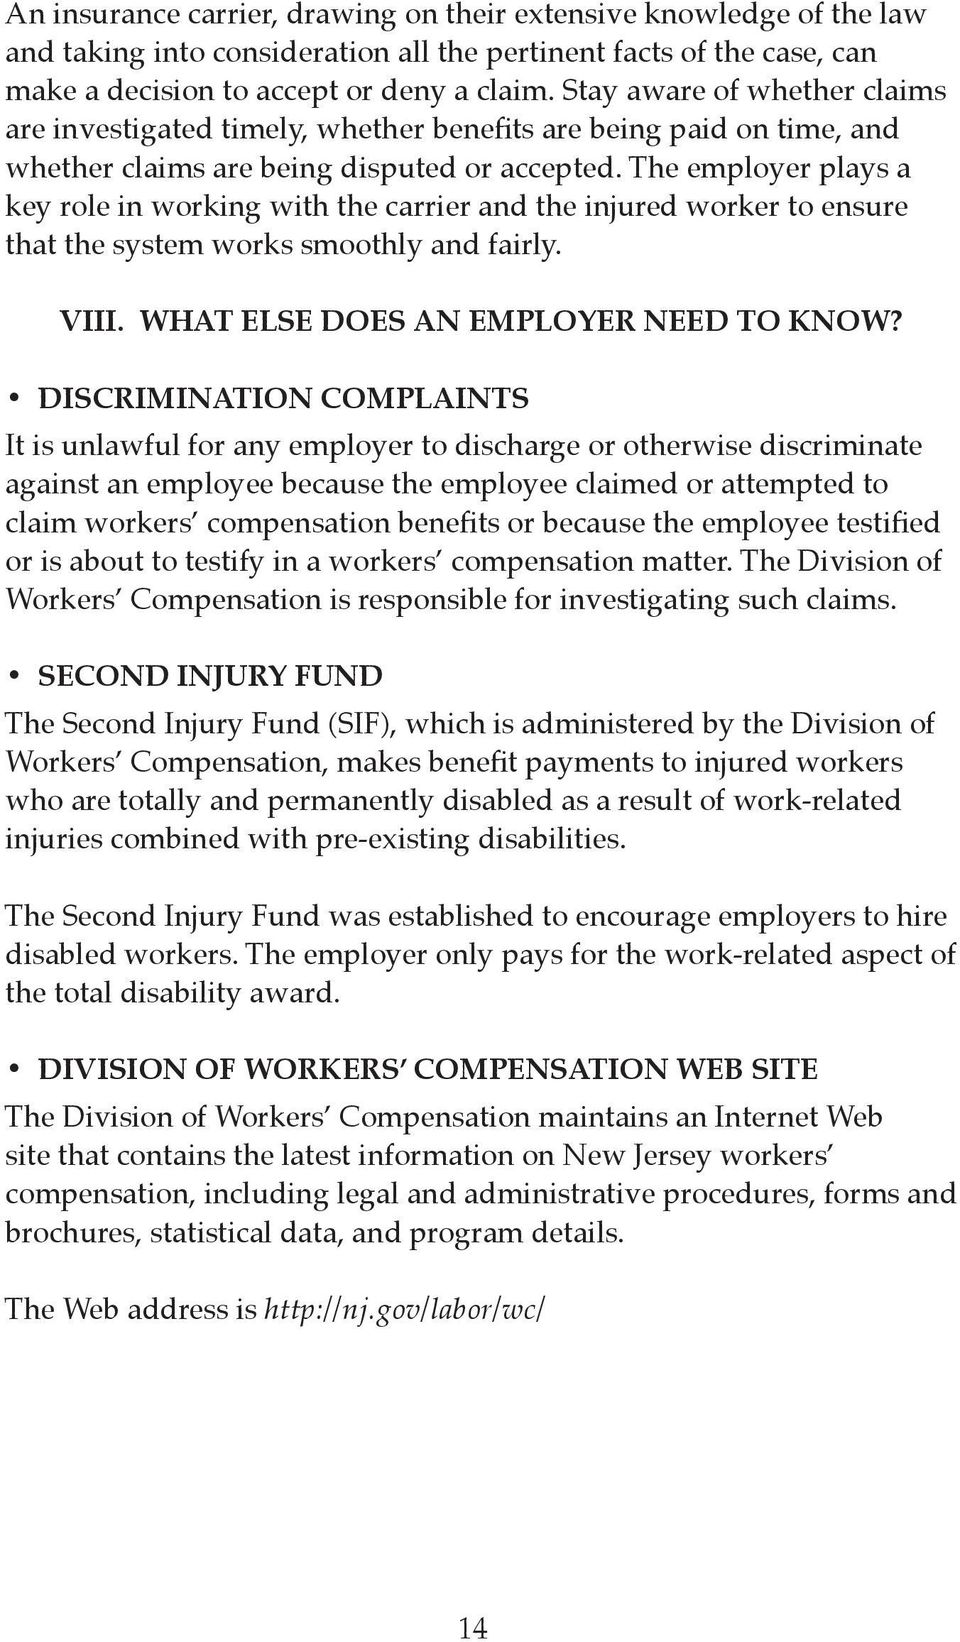 The employer plays a key role in working with the carrier and the injured worker to ensure that the system works smoothly and fairly. VIII. WHAT ELSE DOES AN EMPLOYER NEED TO KNOW?